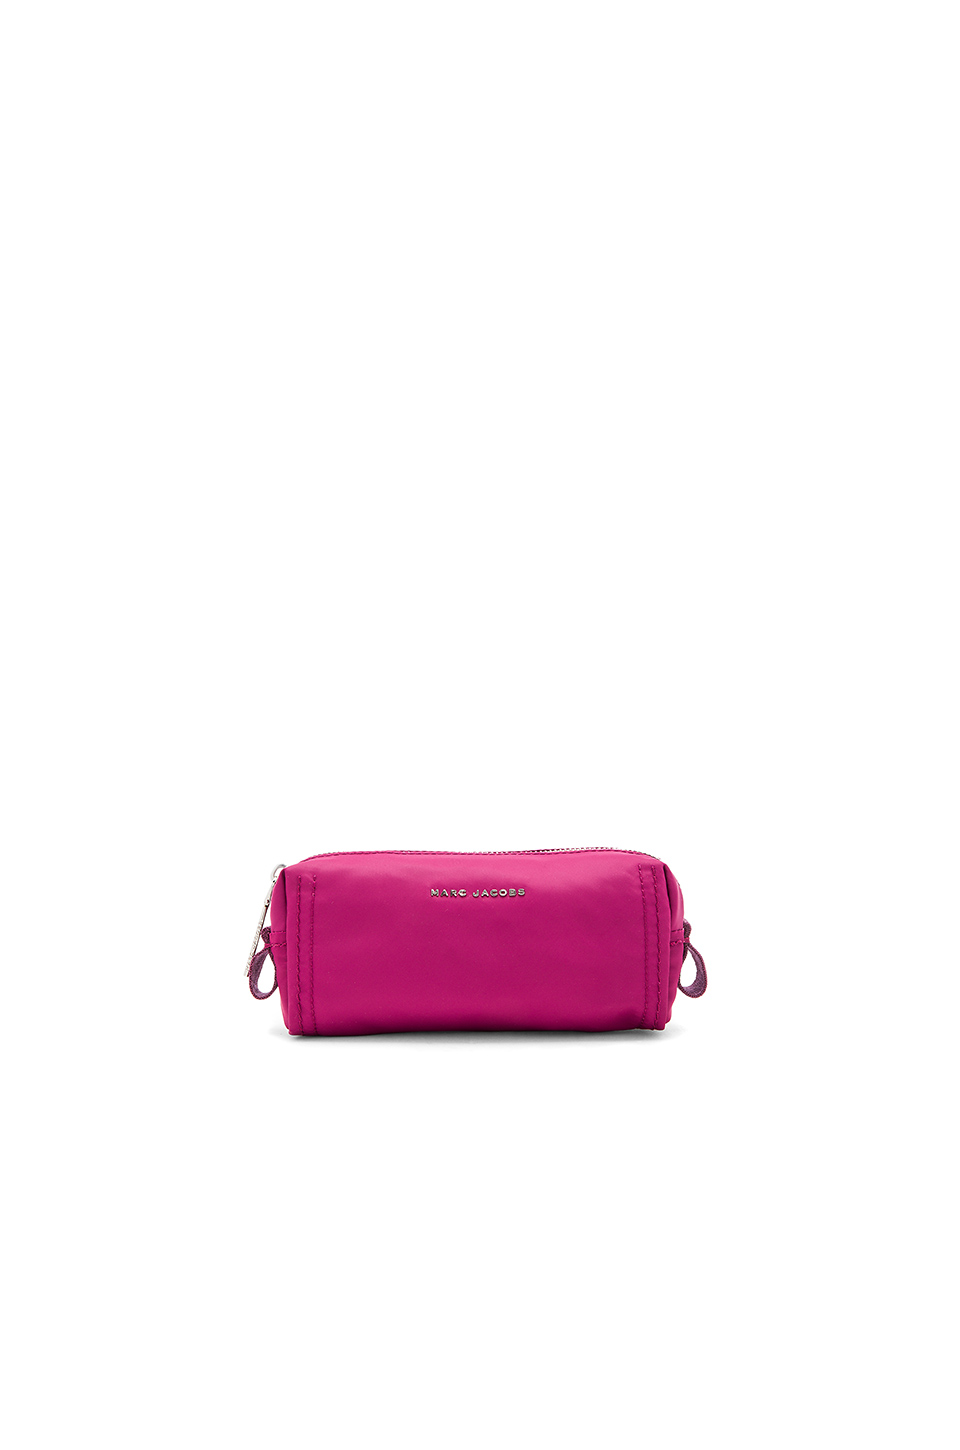 Marc Jacobs Easy Skinny Cosmetic Bag in Wild Berry